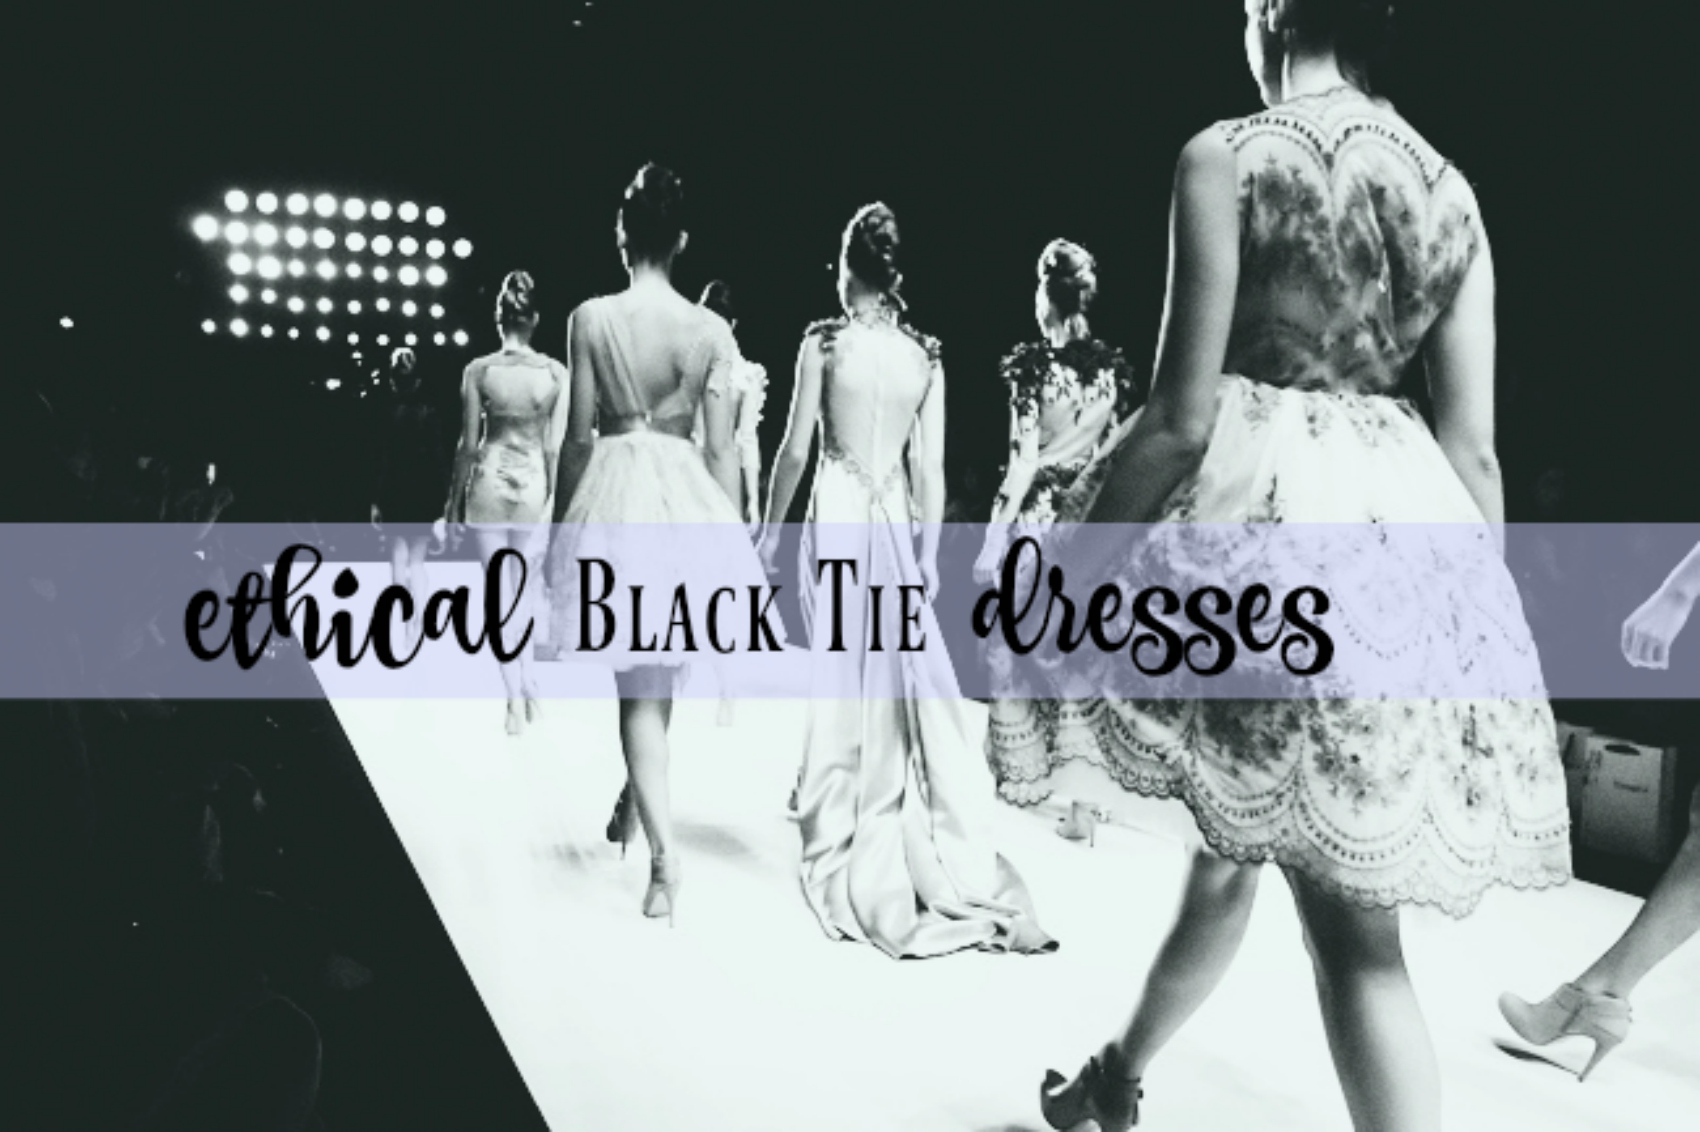 Ethical Black Tie Dresses